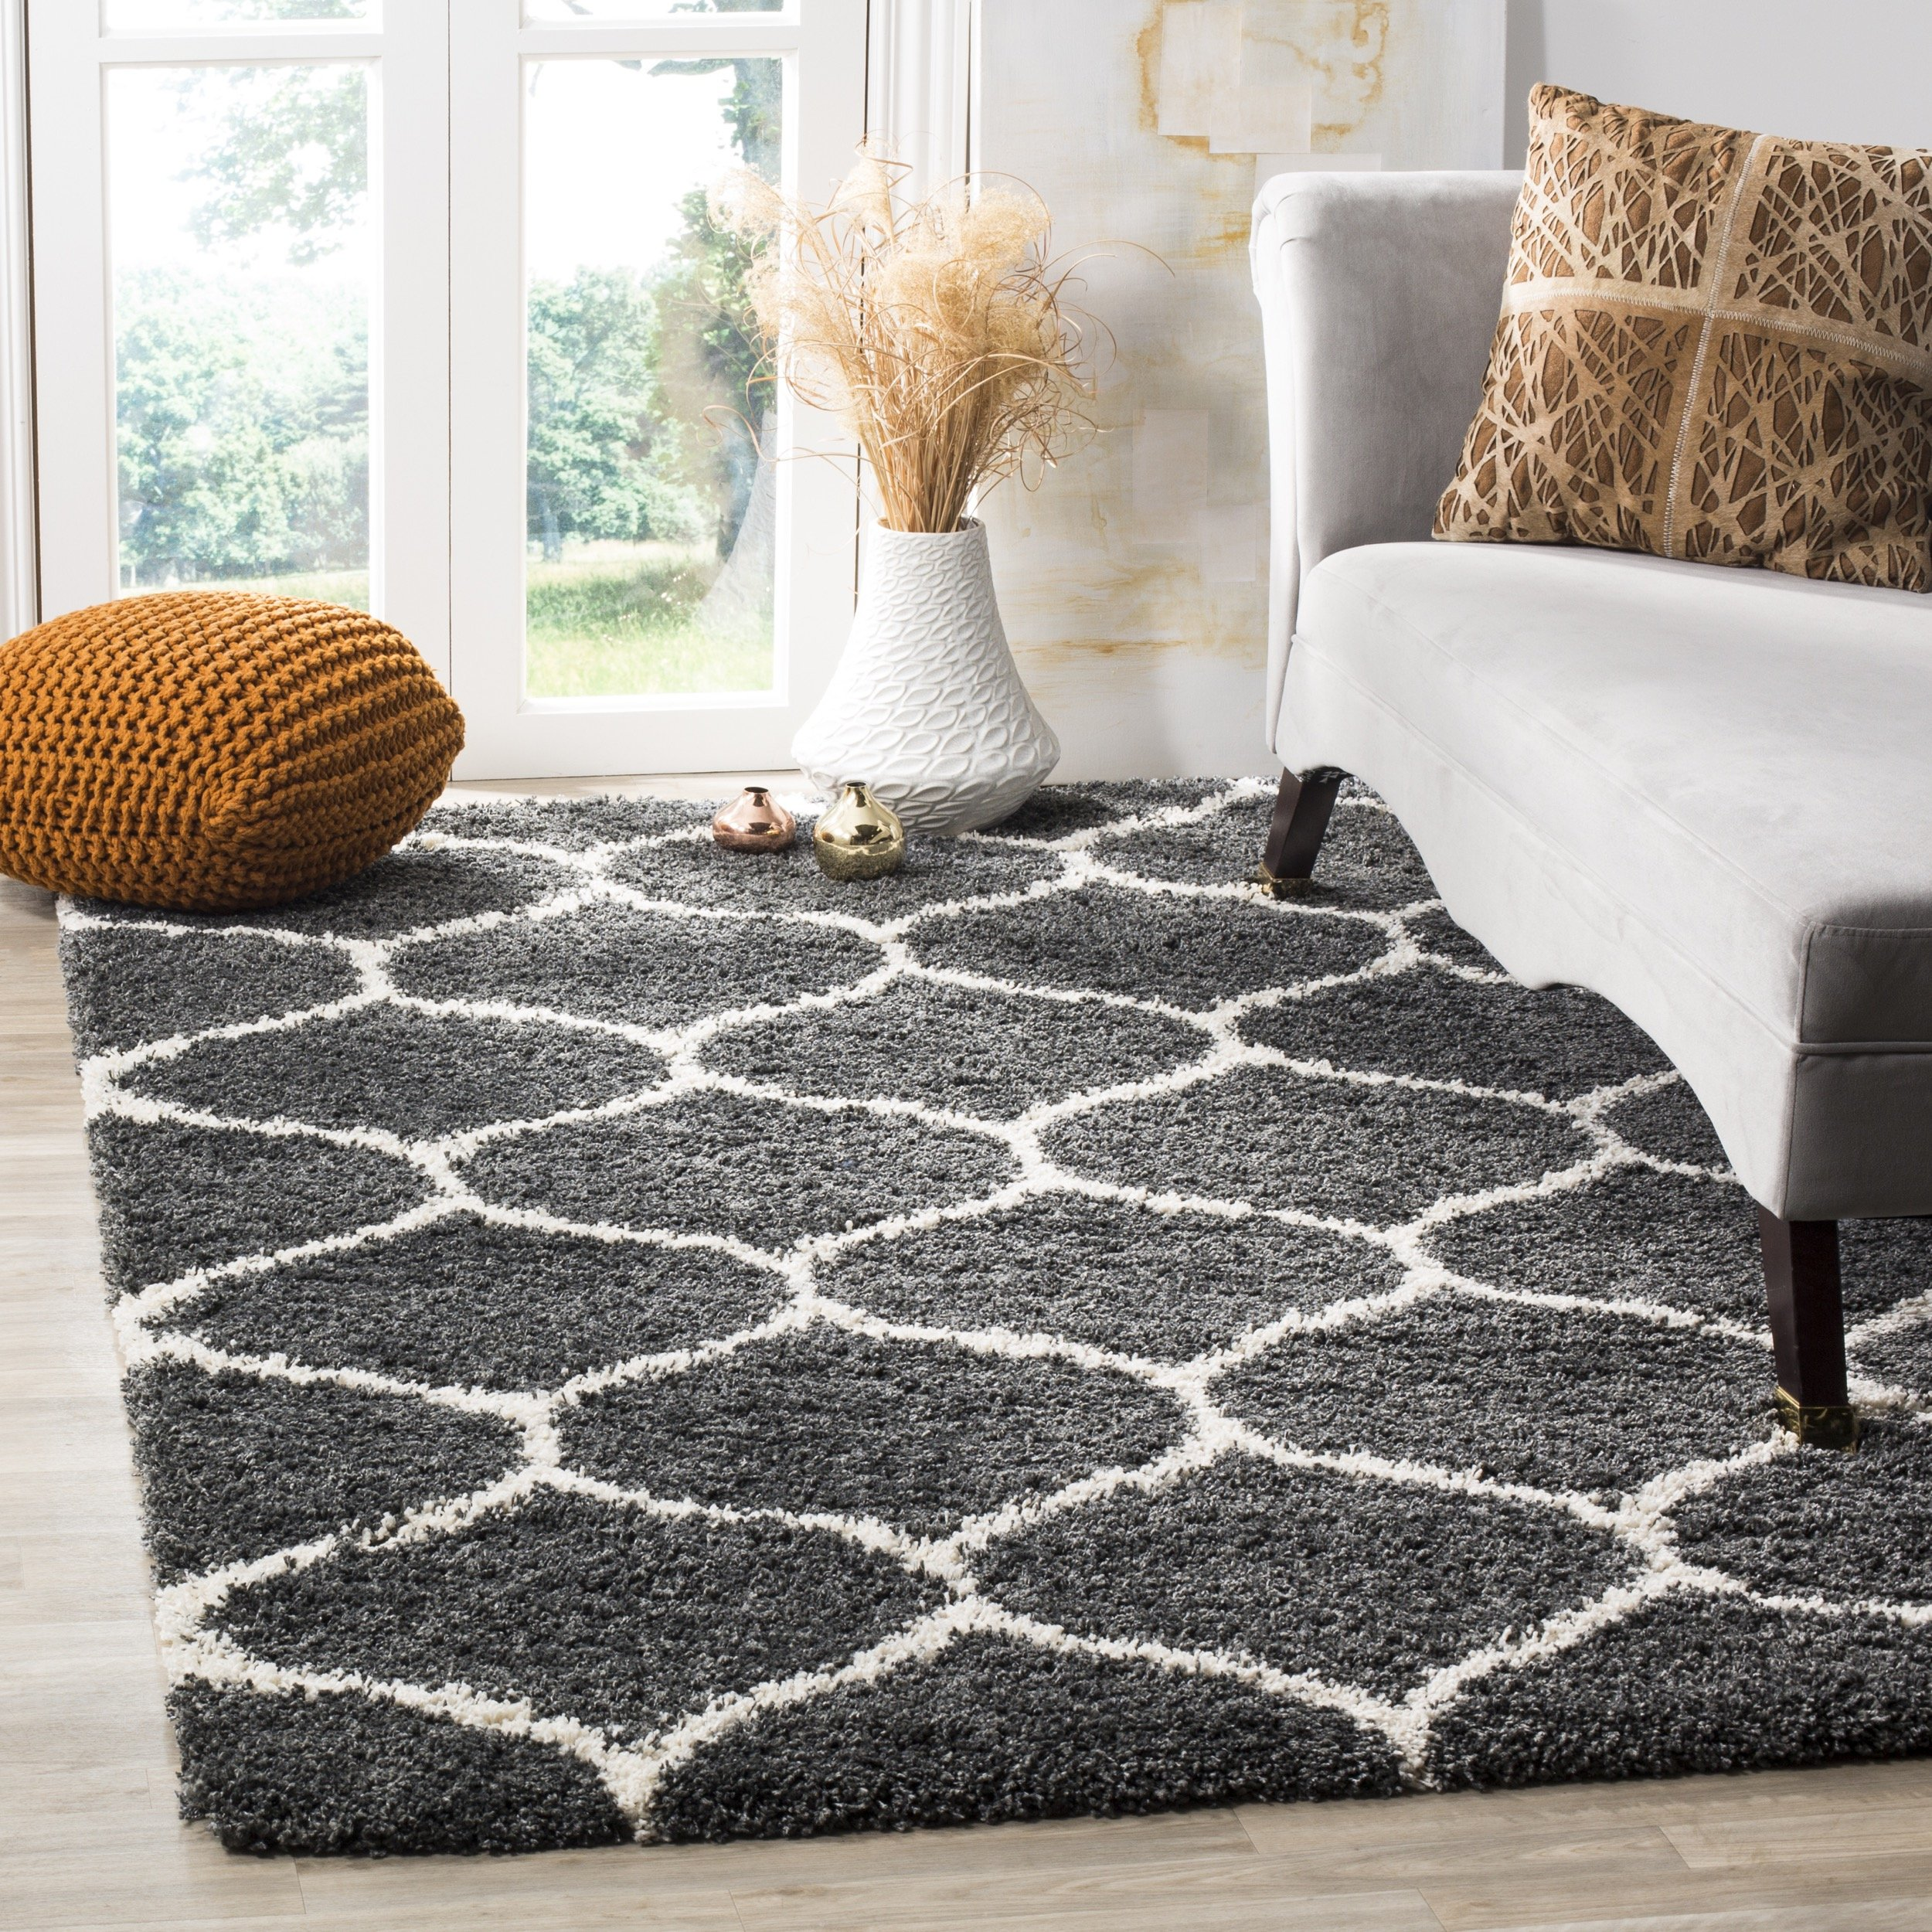 Safavieh Hudson Shag Collection SGH280G Dark Grey and Ivory Moroccan Ogee Plush Square Area Rug (7' Square) by Safavieh